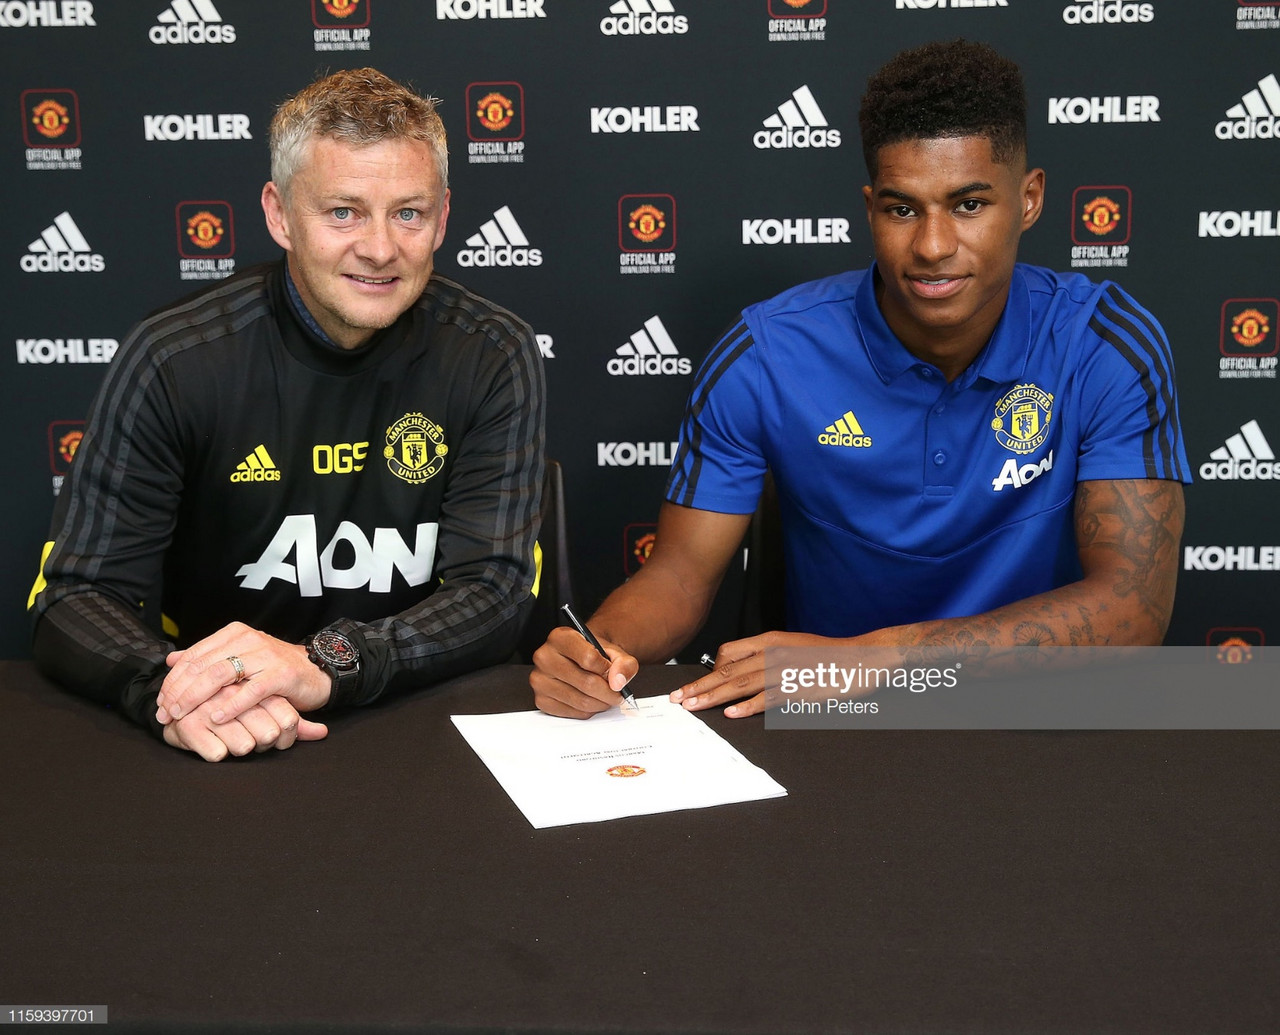 Analyzing Marcus Rashford's long term contract extension with Manchester United